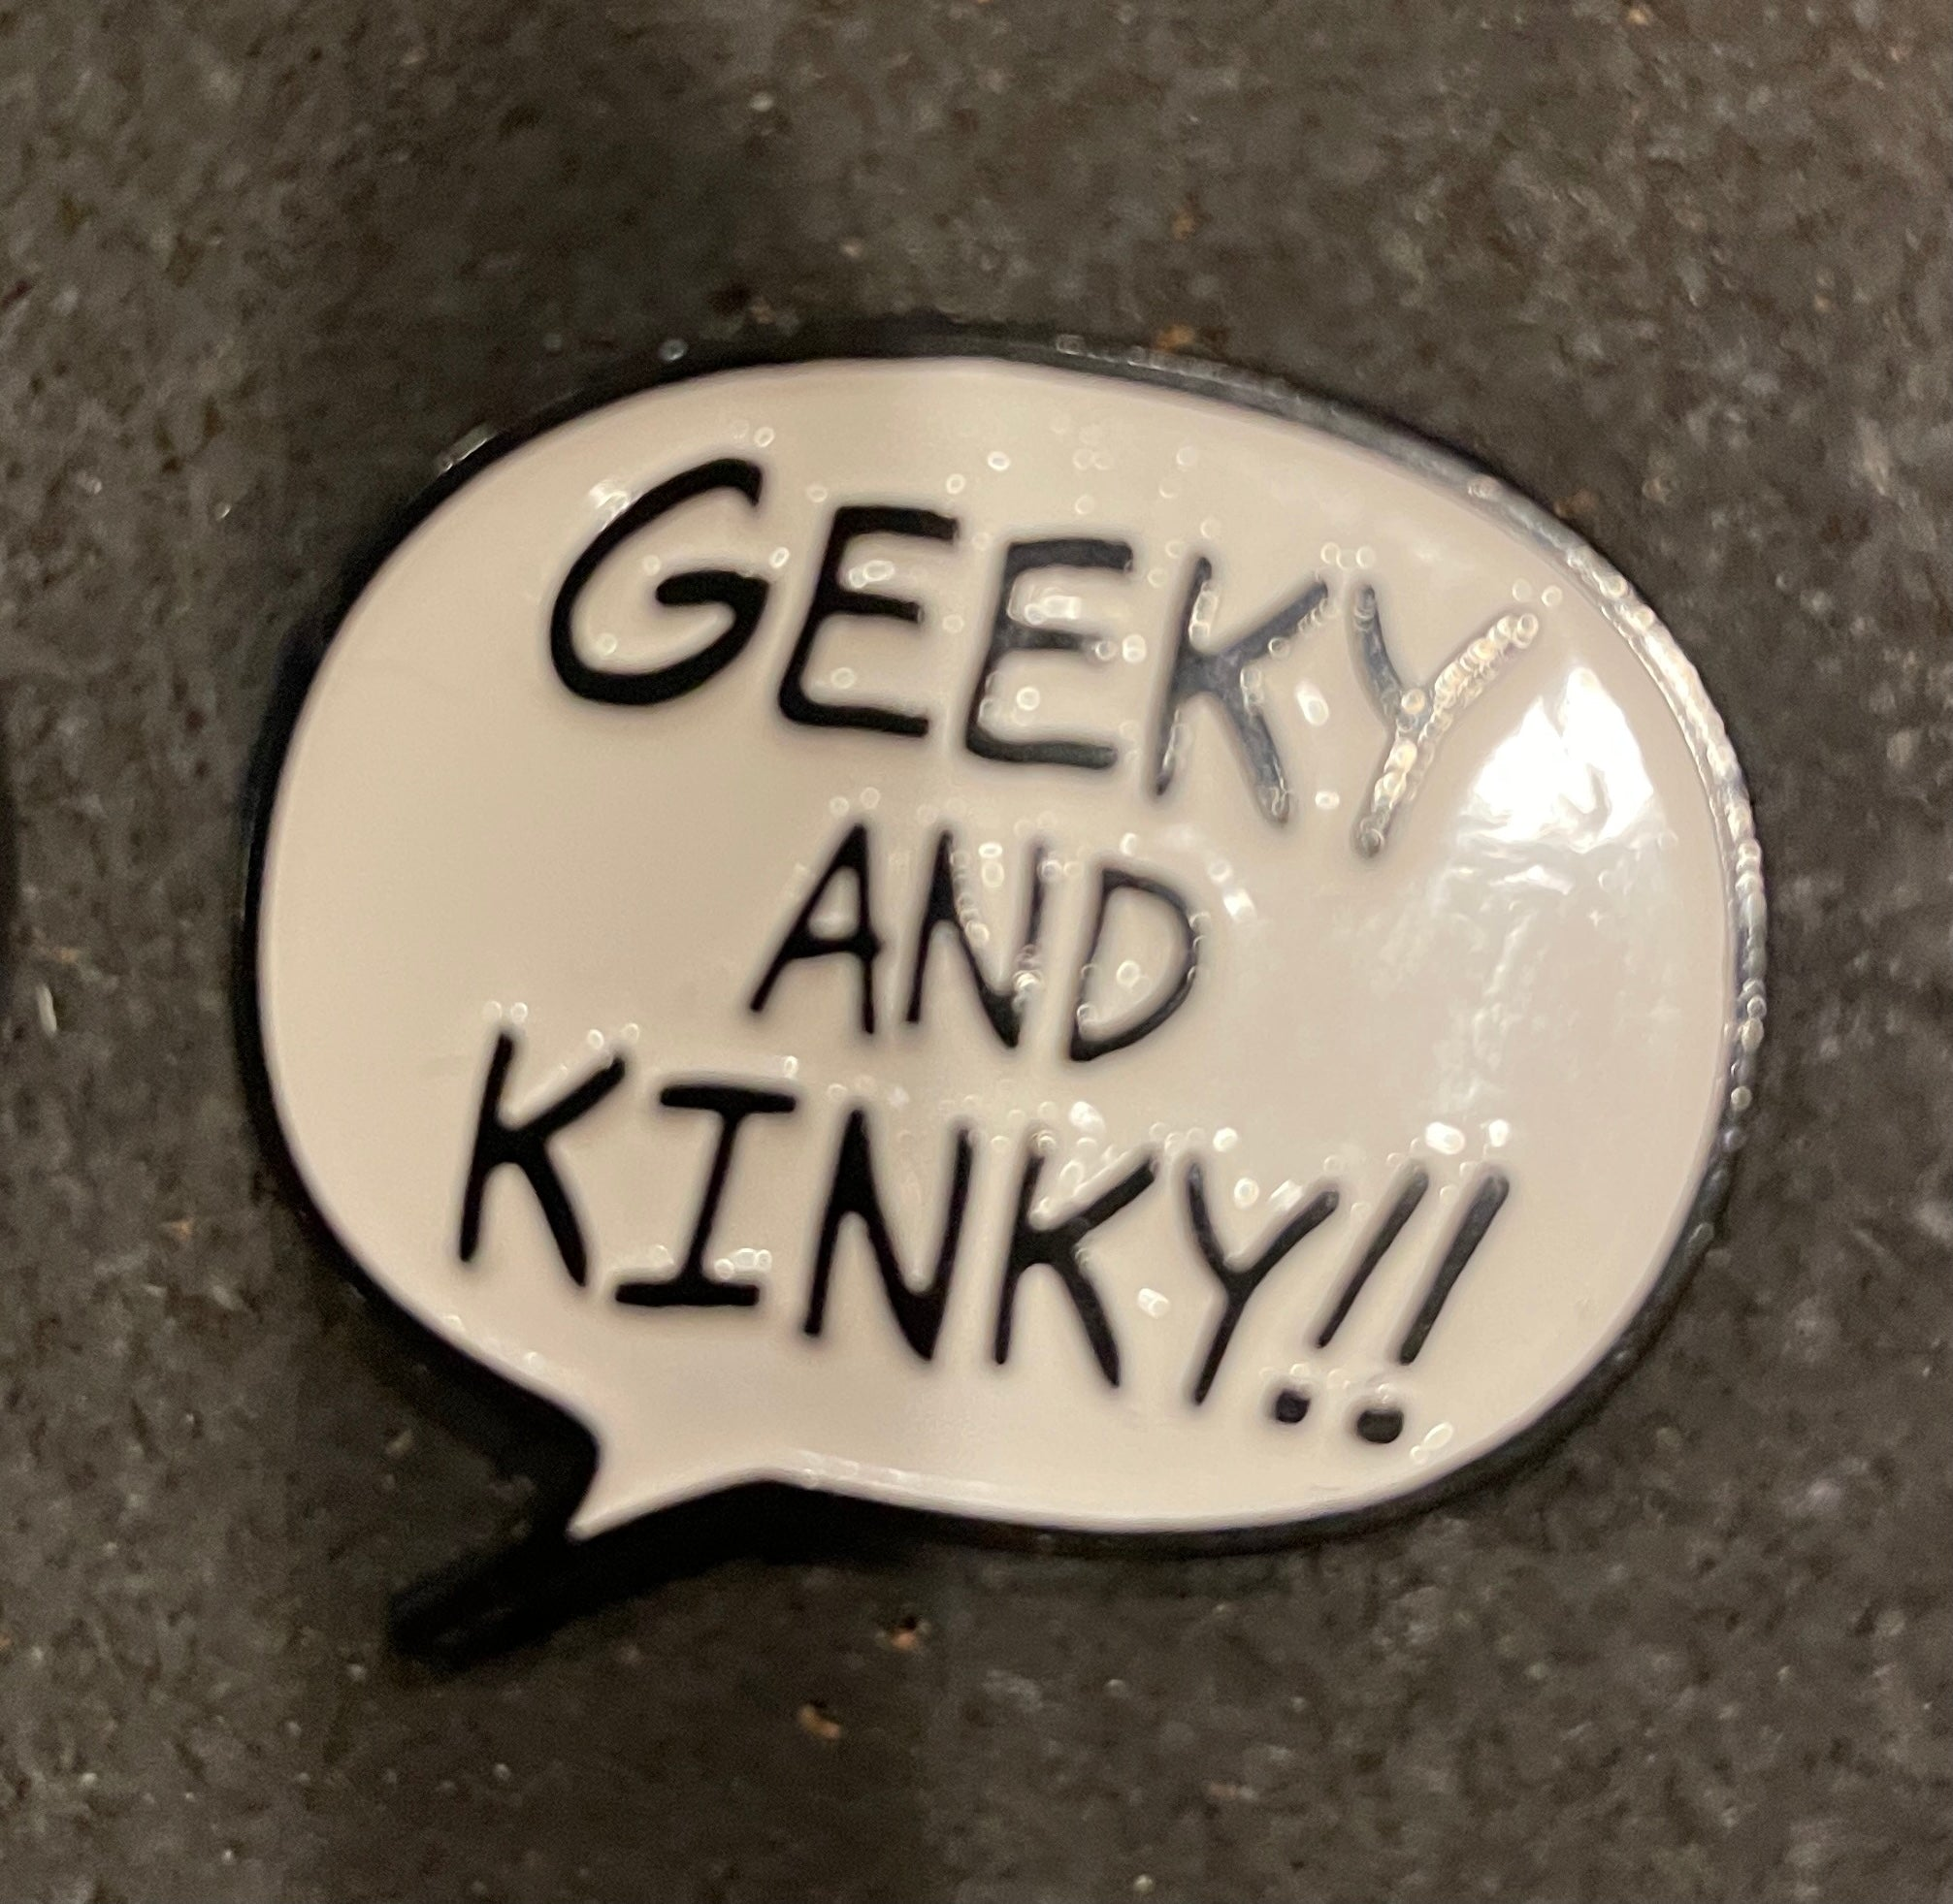 Geeky and Knky - Black and White